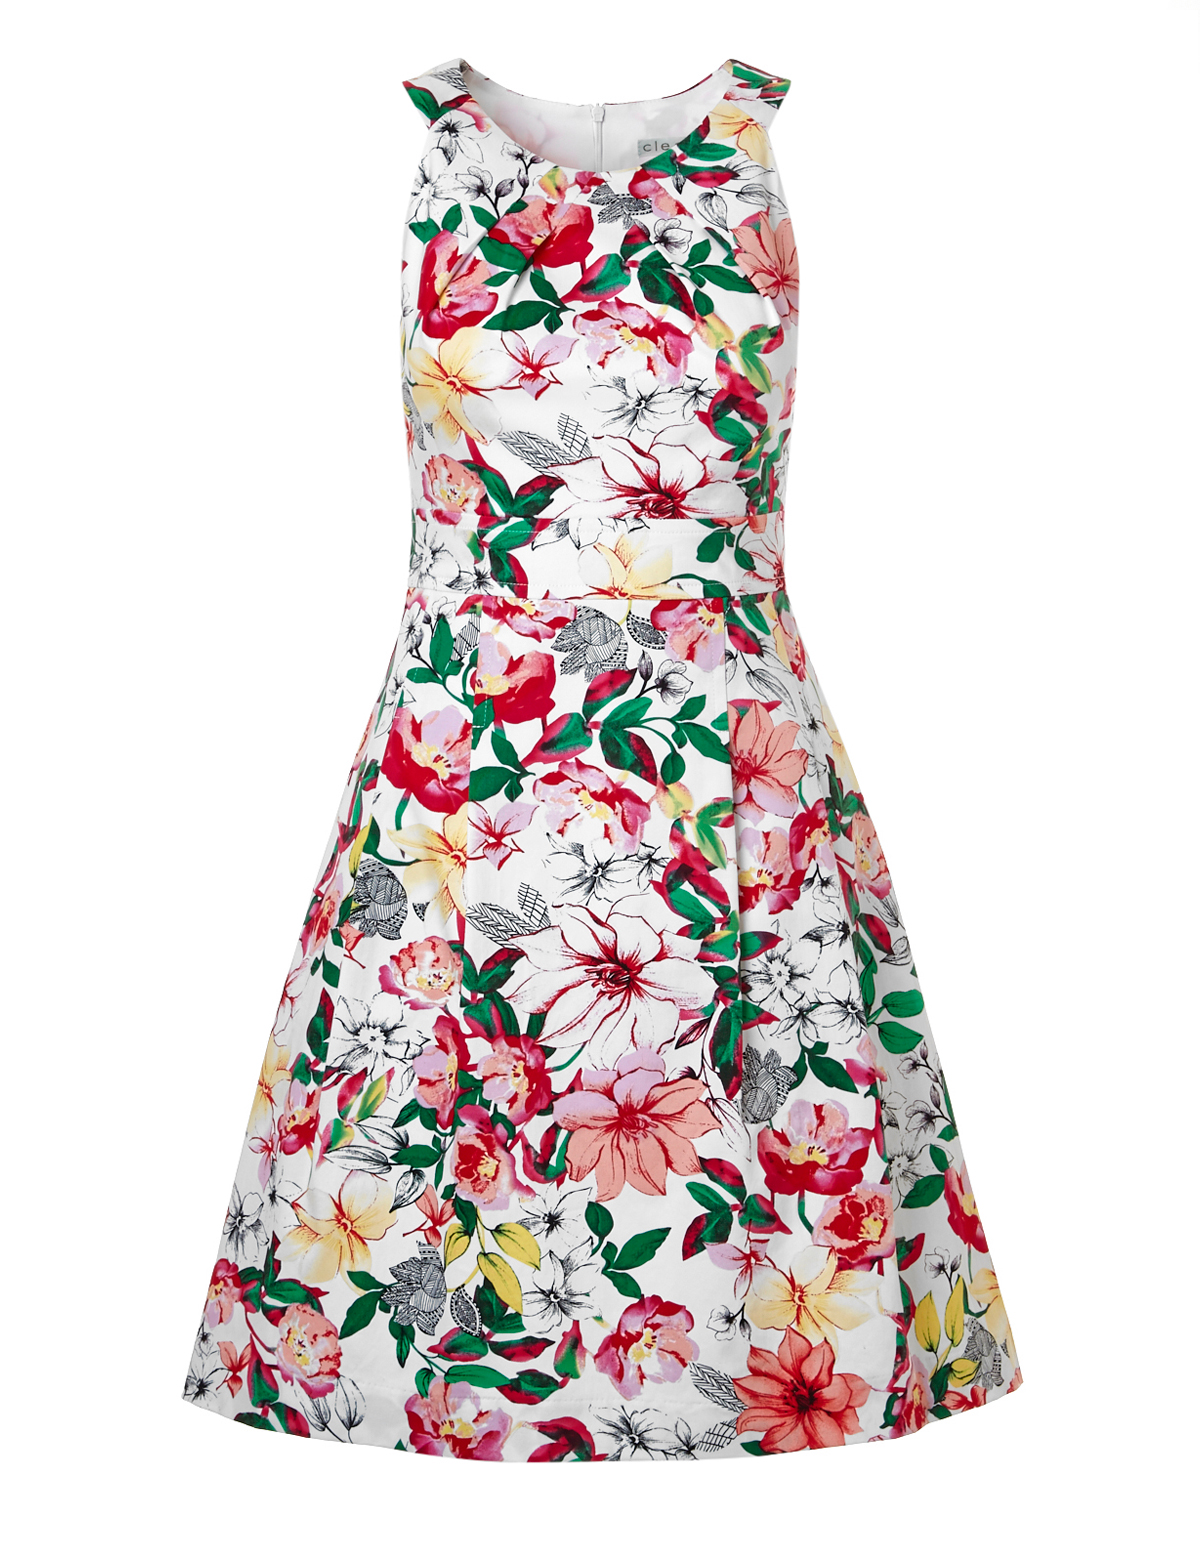 Floral Sateen Twist Dress With Pockets Cleo